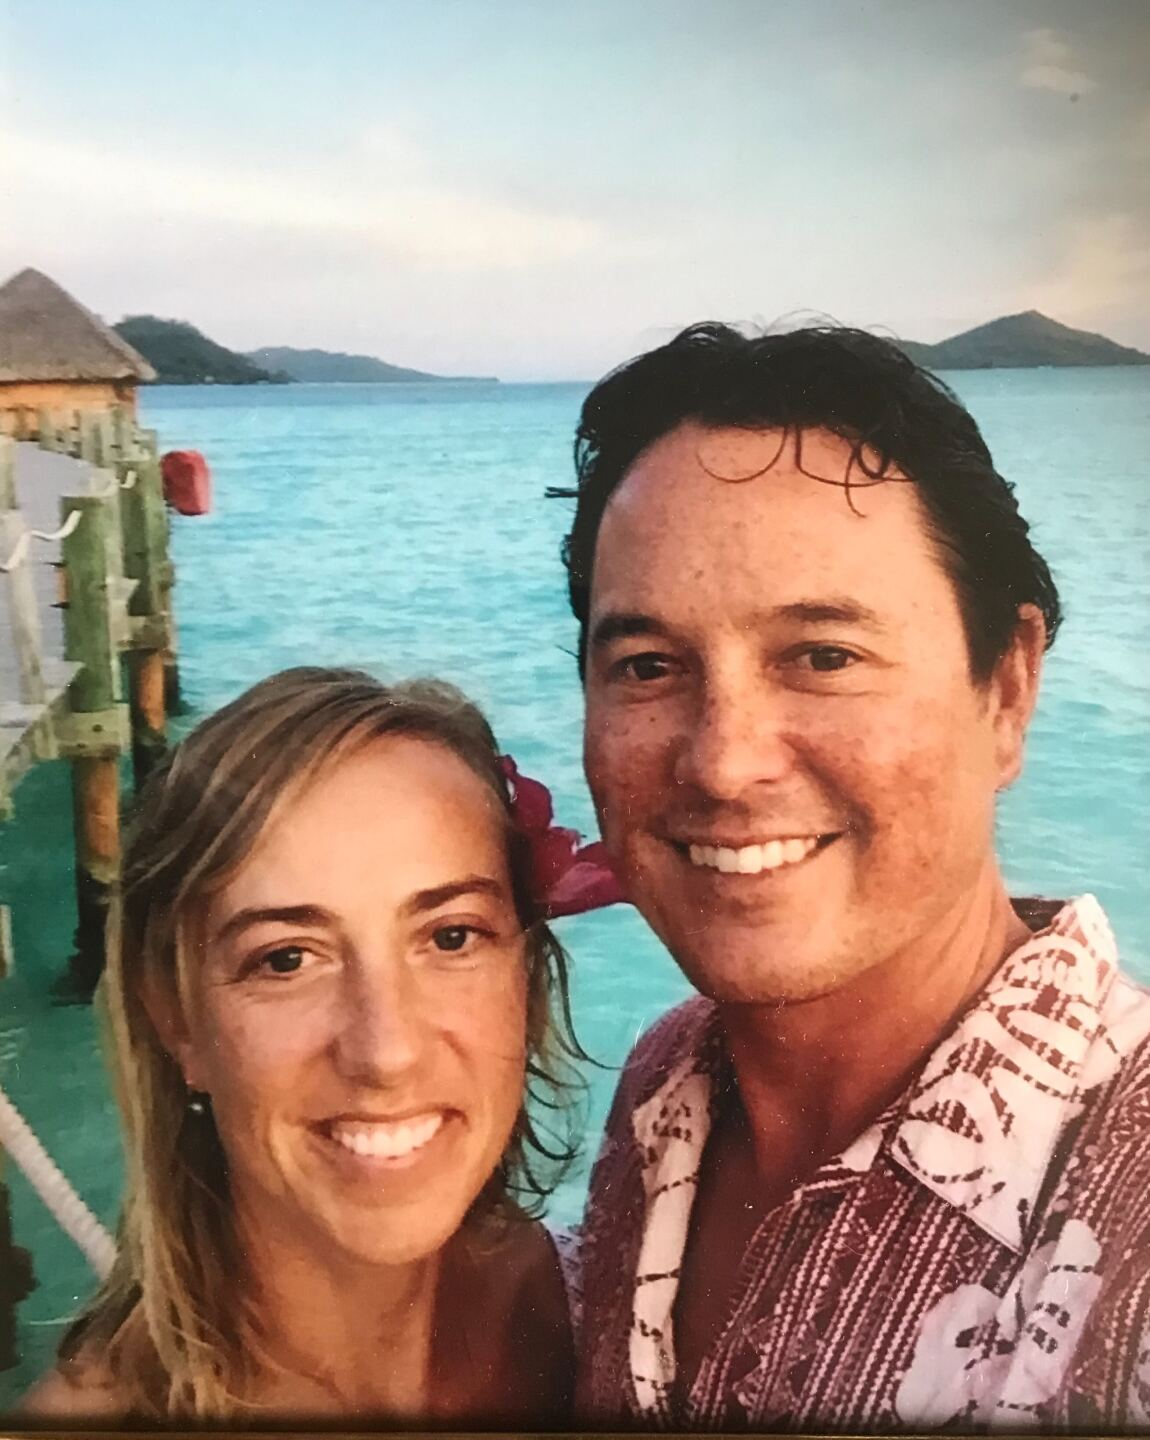 Marine biologist from Wisconsin among victims of boat fire